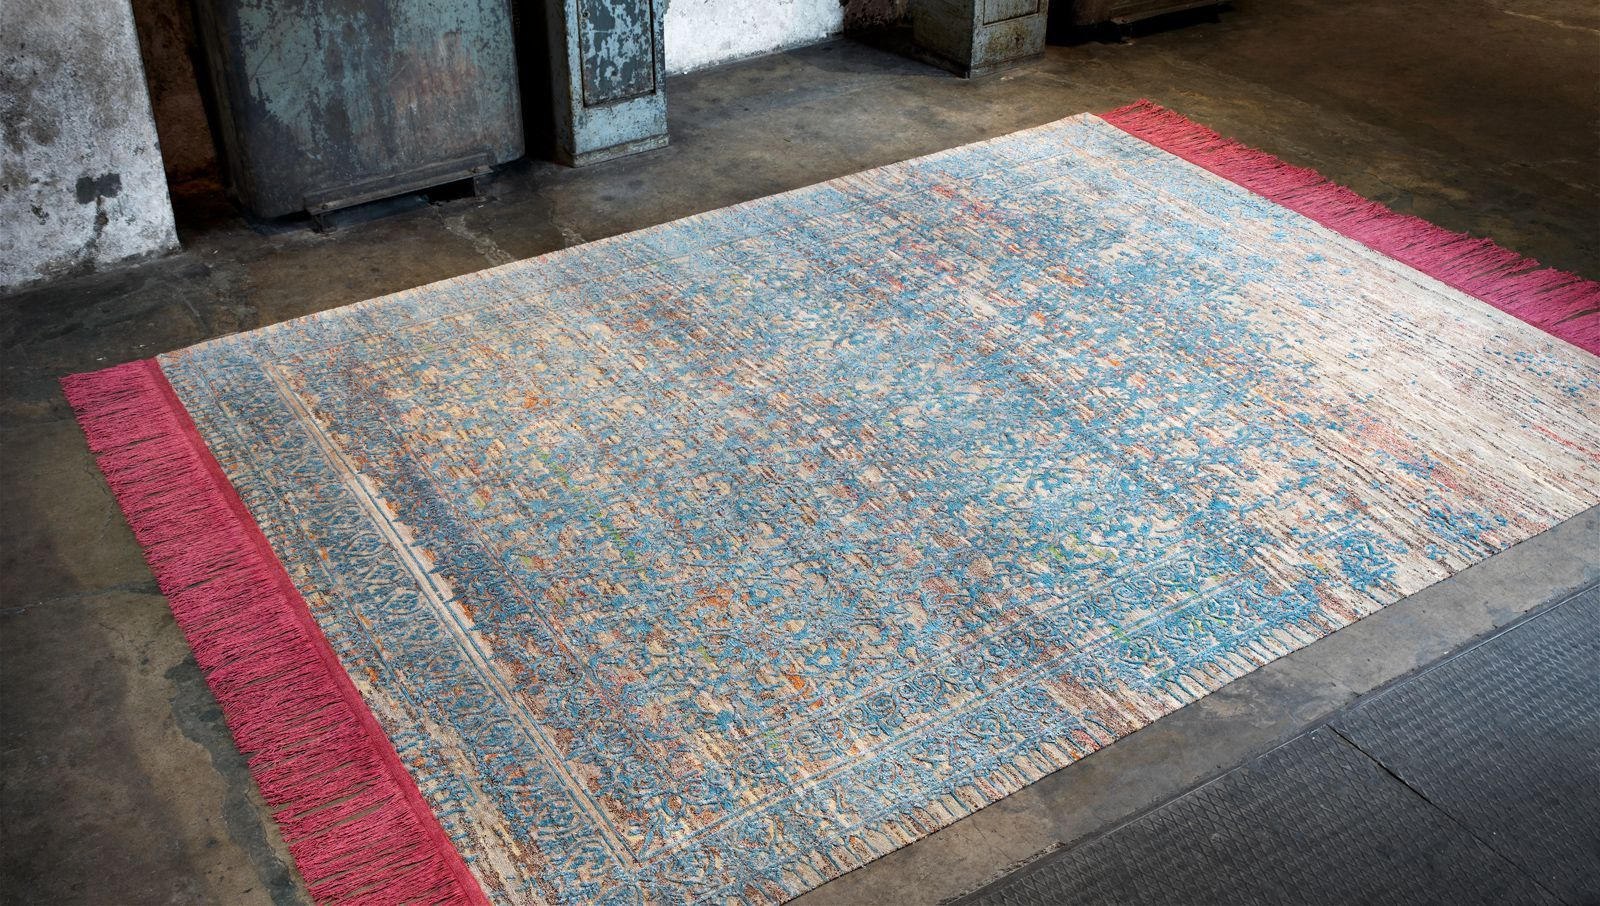 Jan Kath Preise radi deluxe collections front jk radideluxe 2a jpg modern rugs